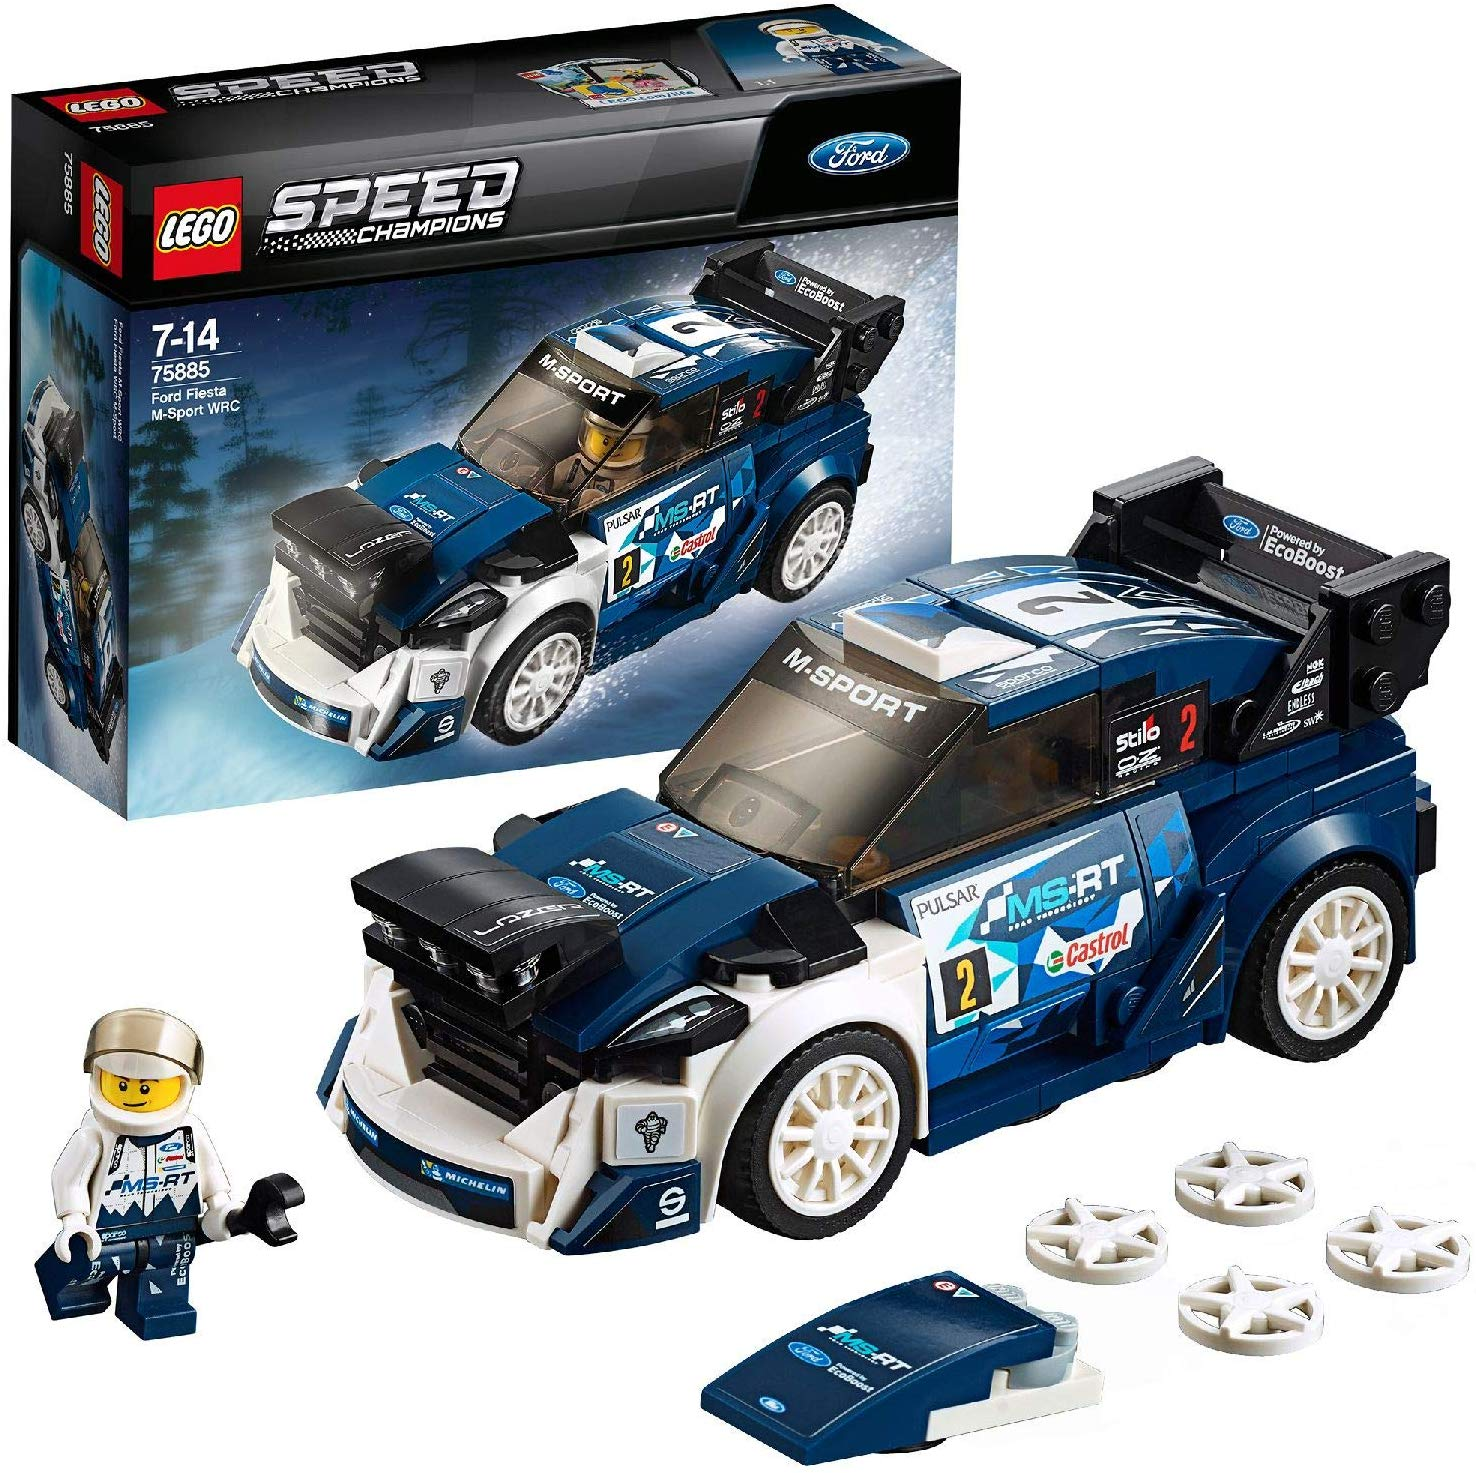 LEGO 75885 with Driver Minifigure Race Toy Car Now £7.98 on Amazon